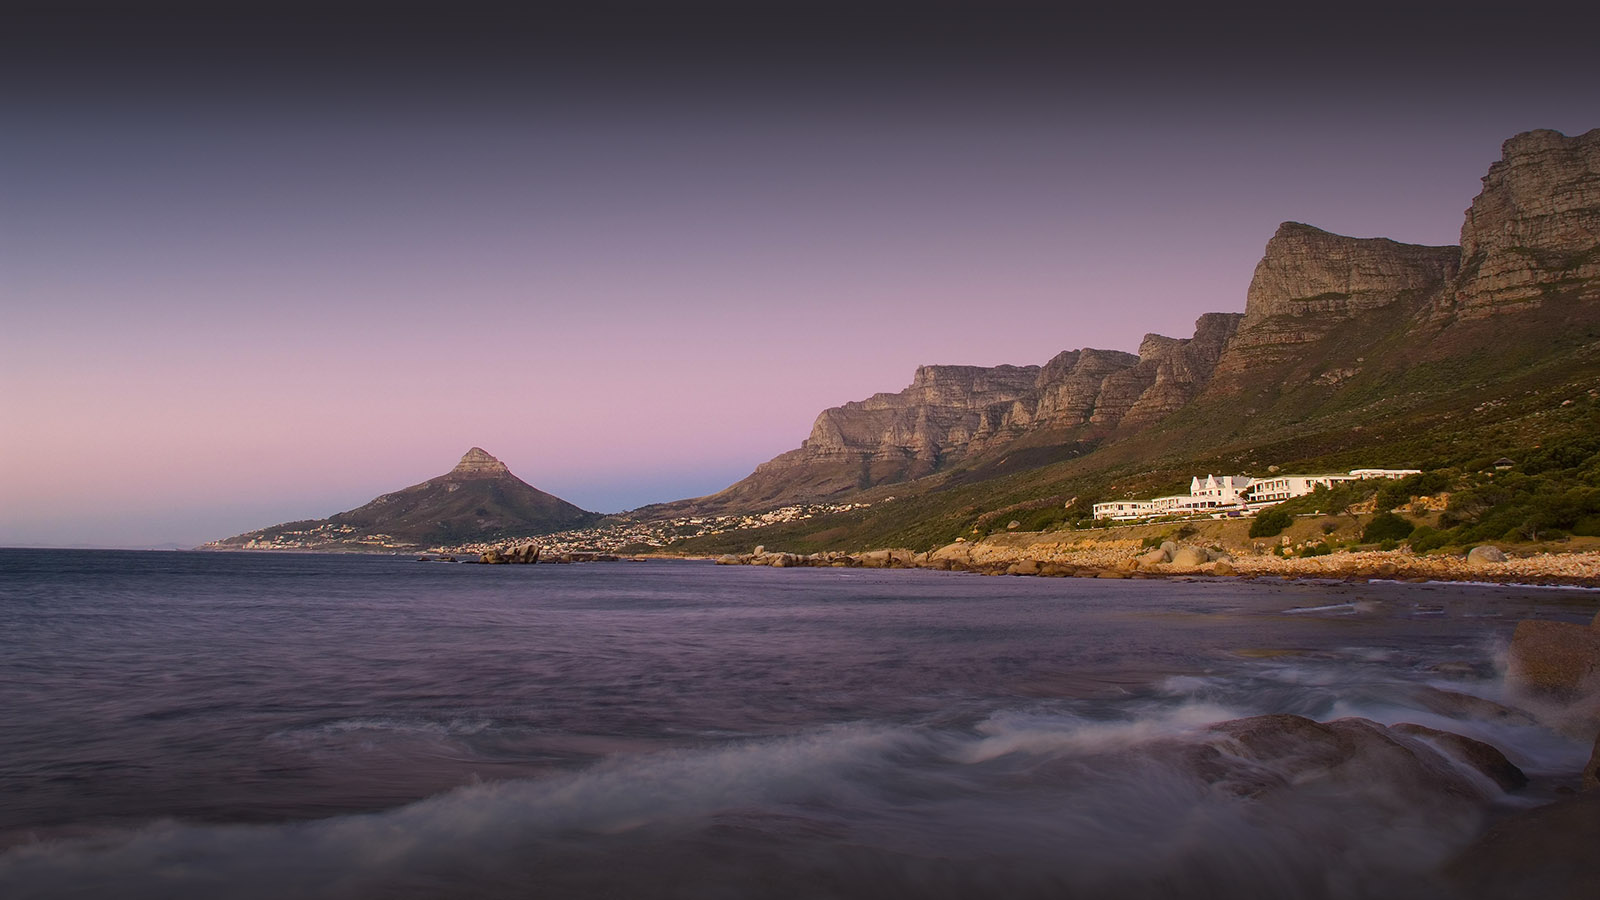 12 apostles hotel cape town mountains-south-africa-luxurious-lodges-accommodation-zambia-in-style-exterior-view-hotel